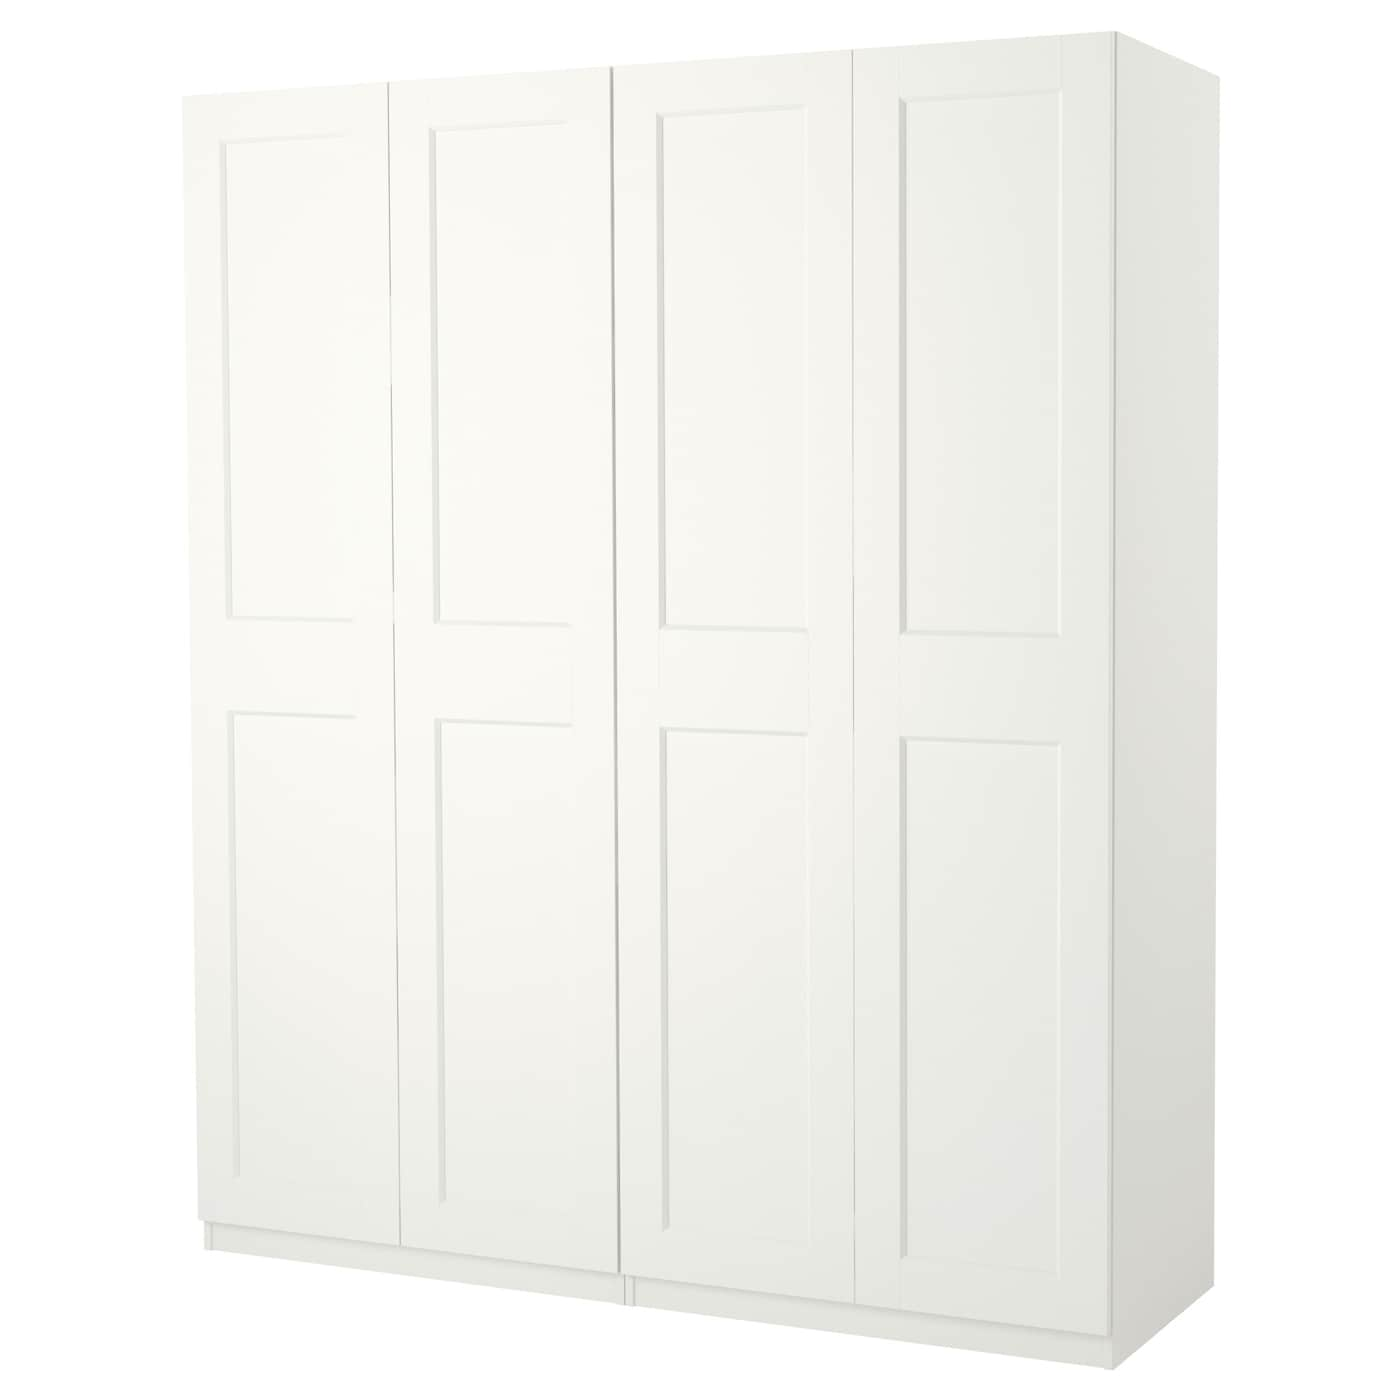 pax armoire penderie blanc grimo blanc 200 x 60 x 236 cm ikea. Black Bedroom Furniture Sets. Home Design Ideas